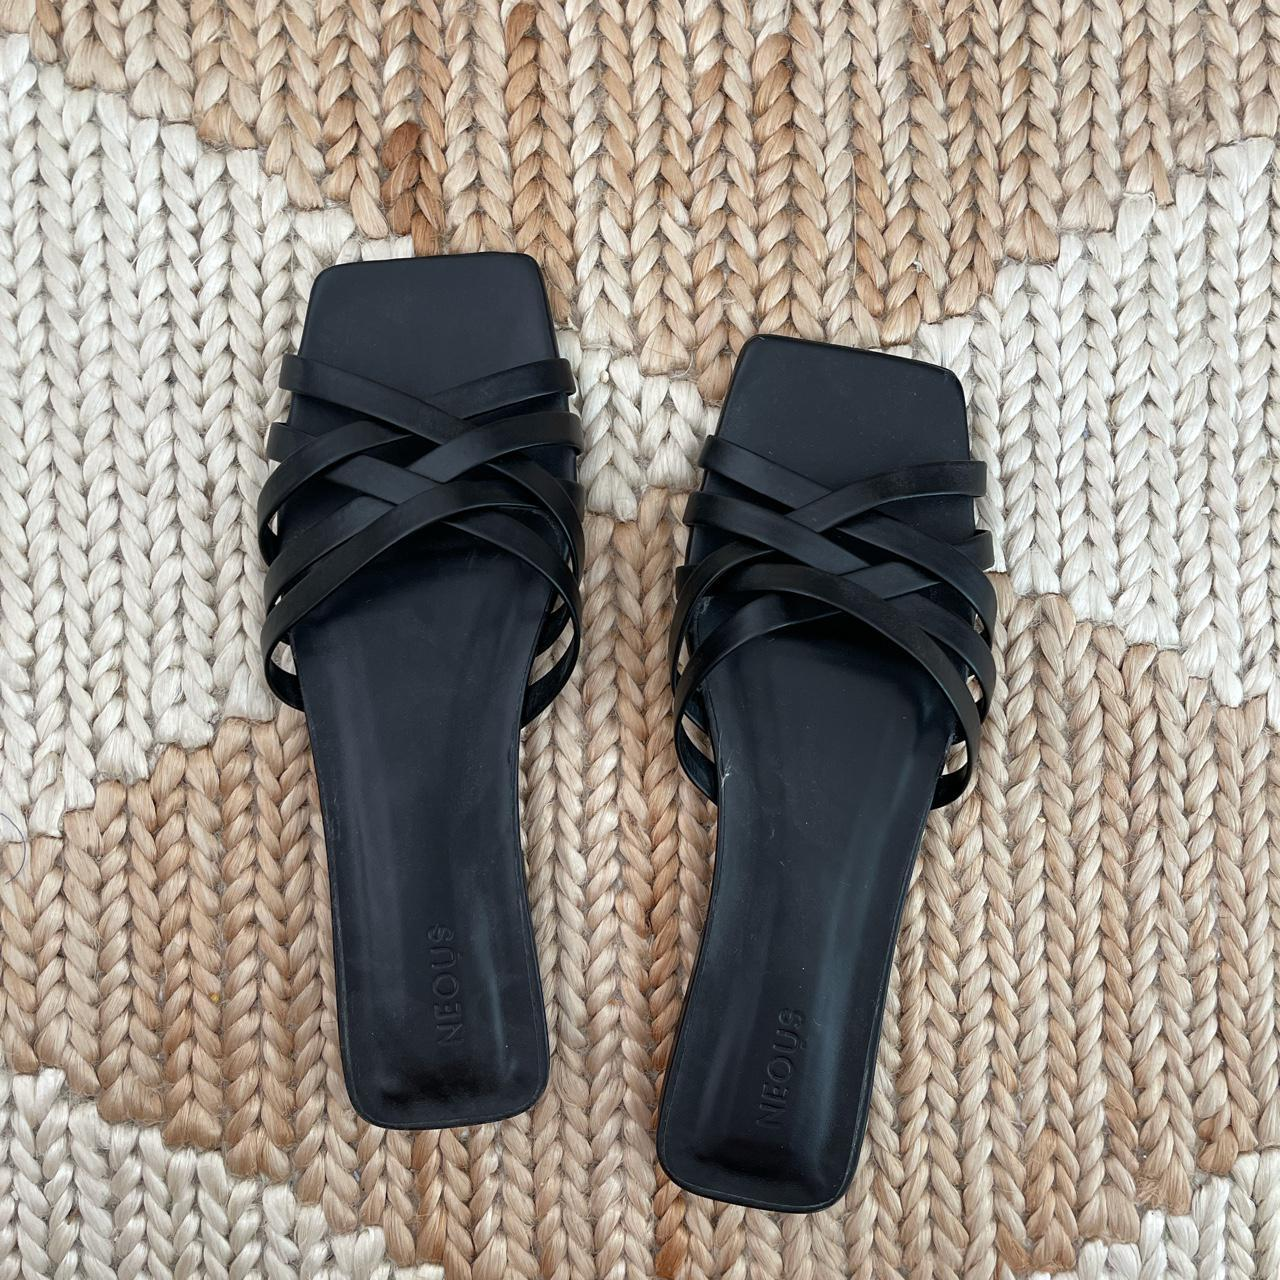 Product Image 1 - Neous black strap leather sandals,